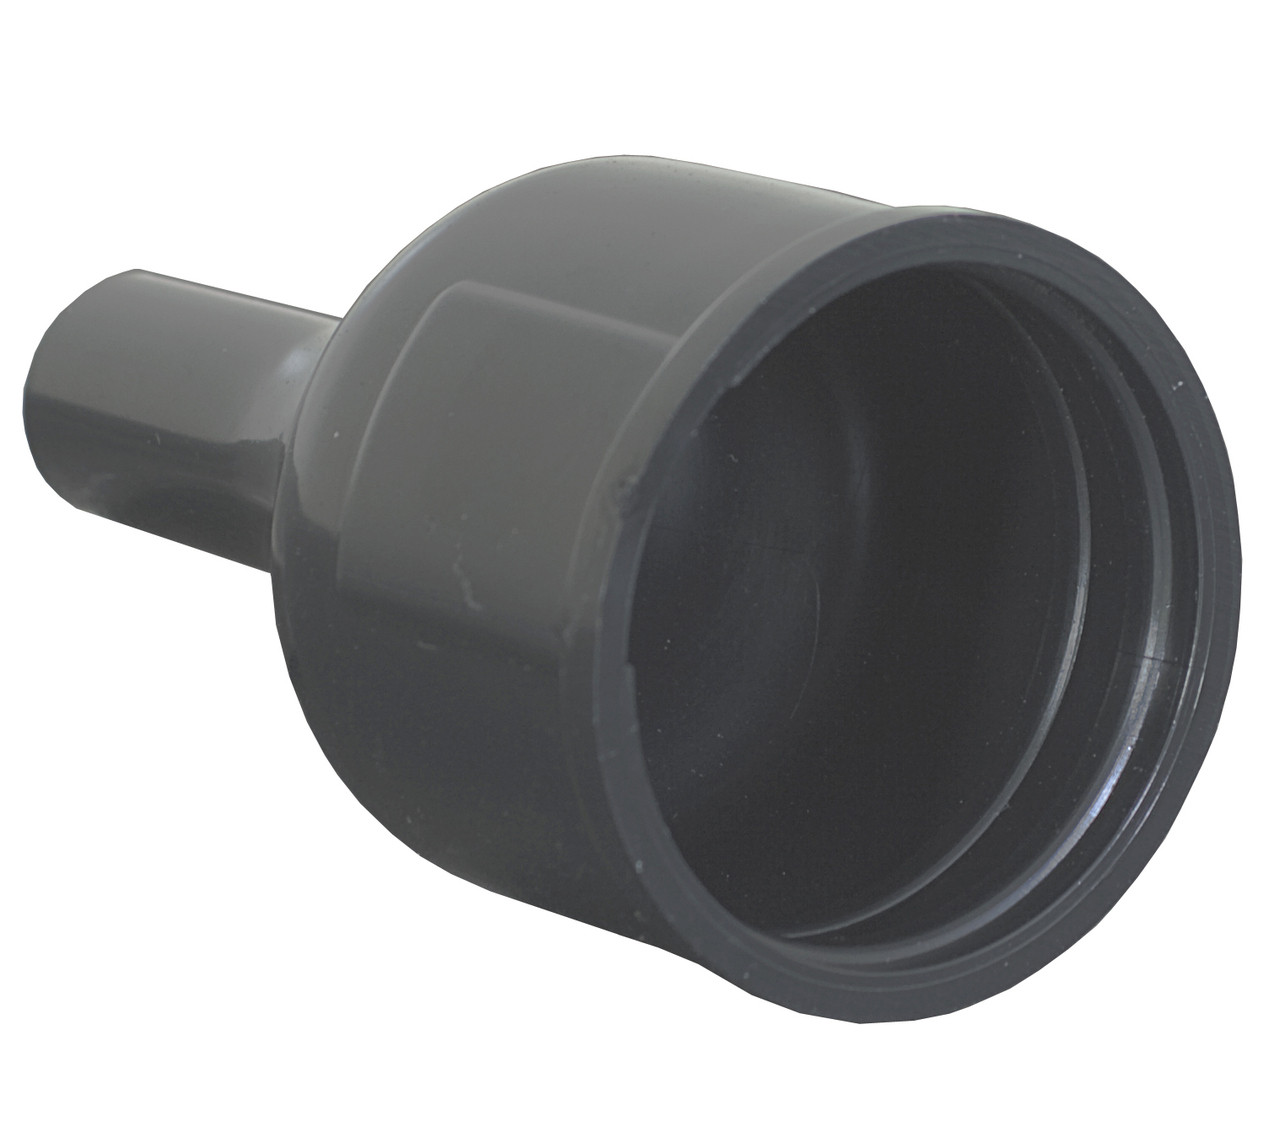 77S11 --- Rubber Boot Socket Protector